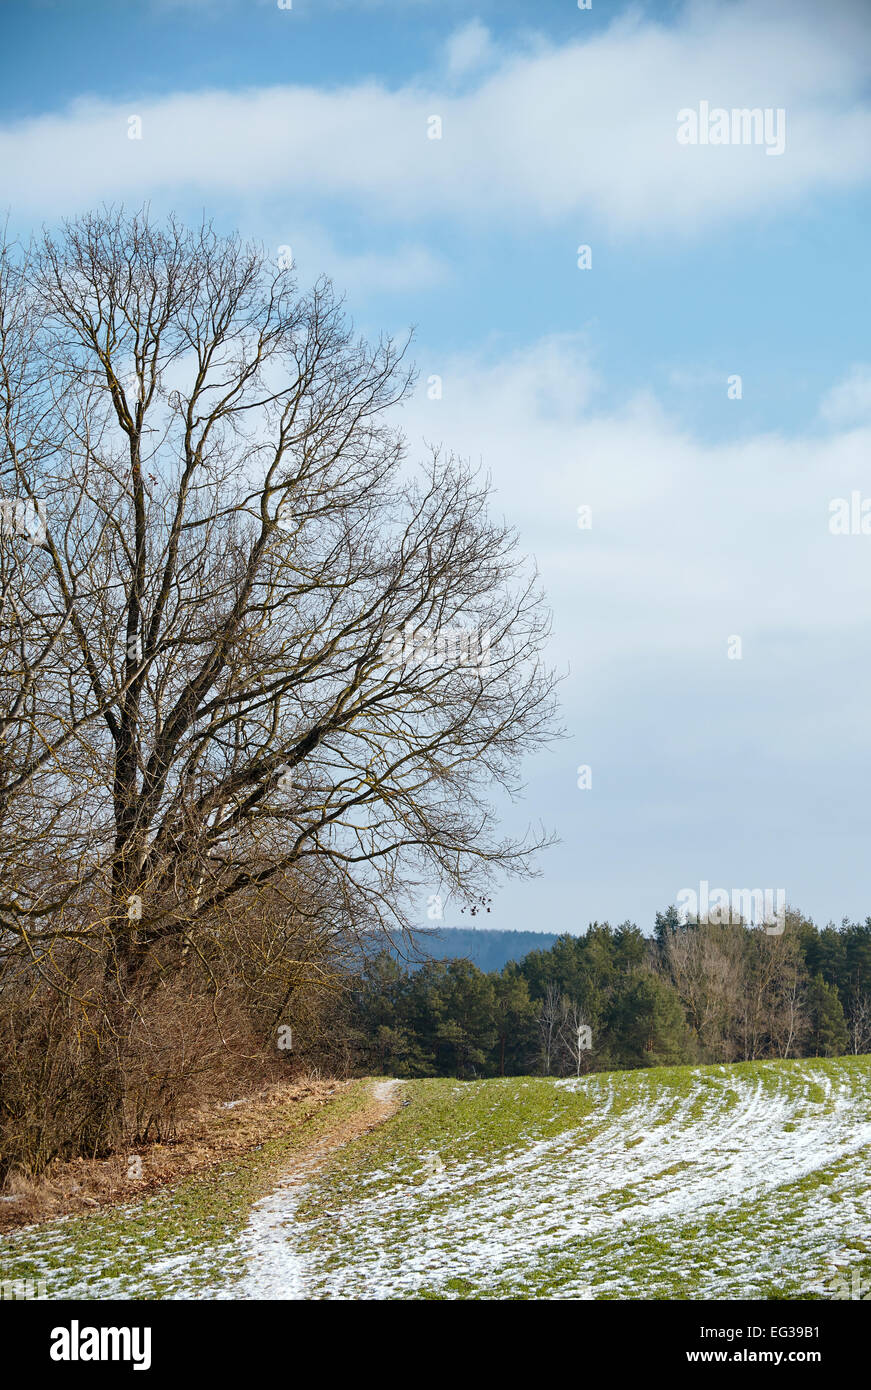 An old obsolete tree at the edge of the field - Stock Image